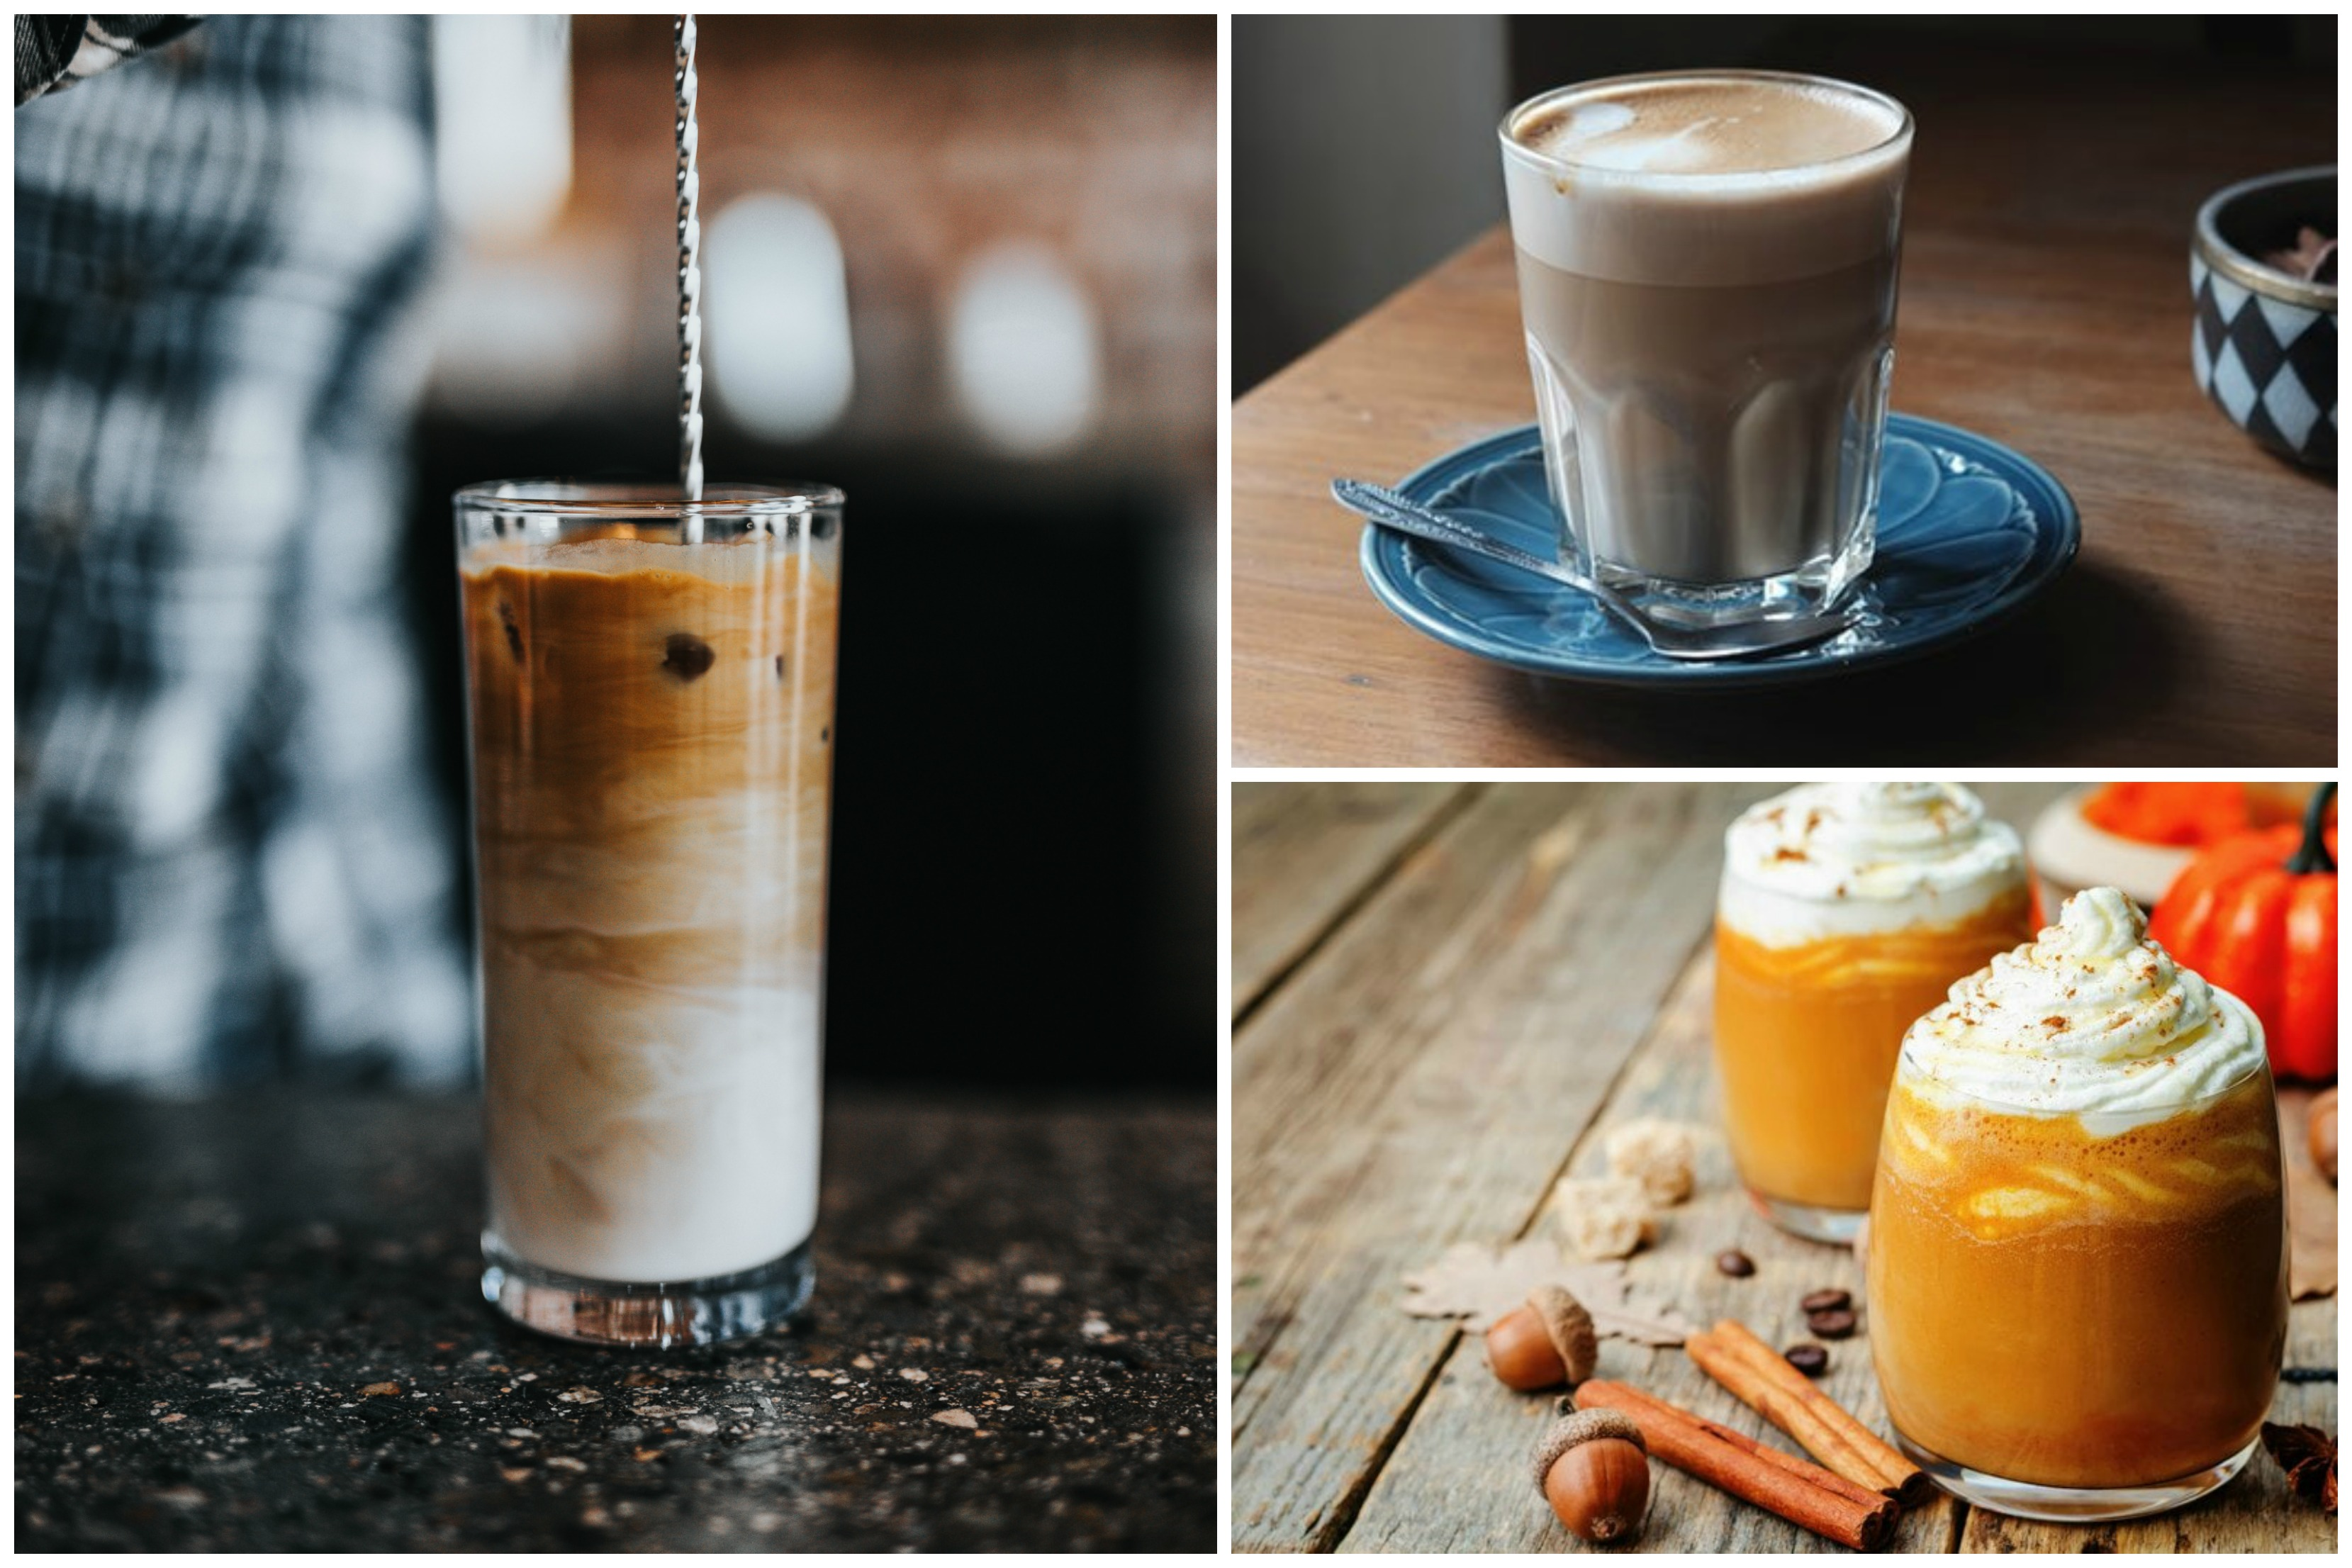 Can I Drink Coffee On A Keto Diet?